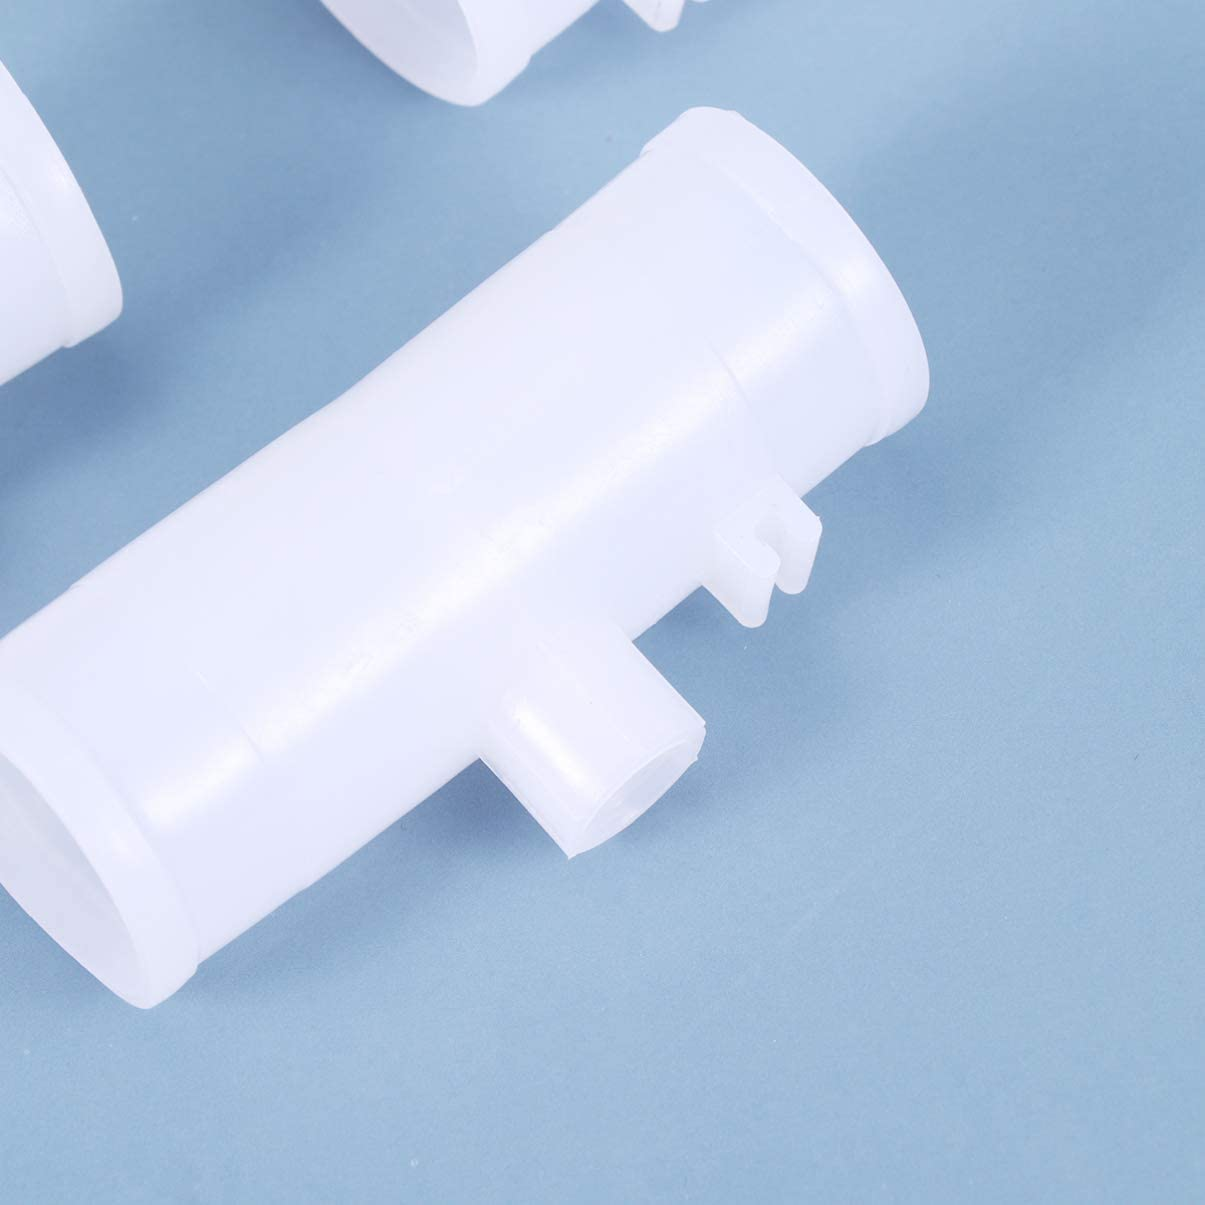 6.5 cm Yardwe 20 Pack PVC Tee Fittings Chicken Waterer for Automatic Poultry Water Drinker and Feeder Cups and Threaded Poultry Nipples Chicken Waterer